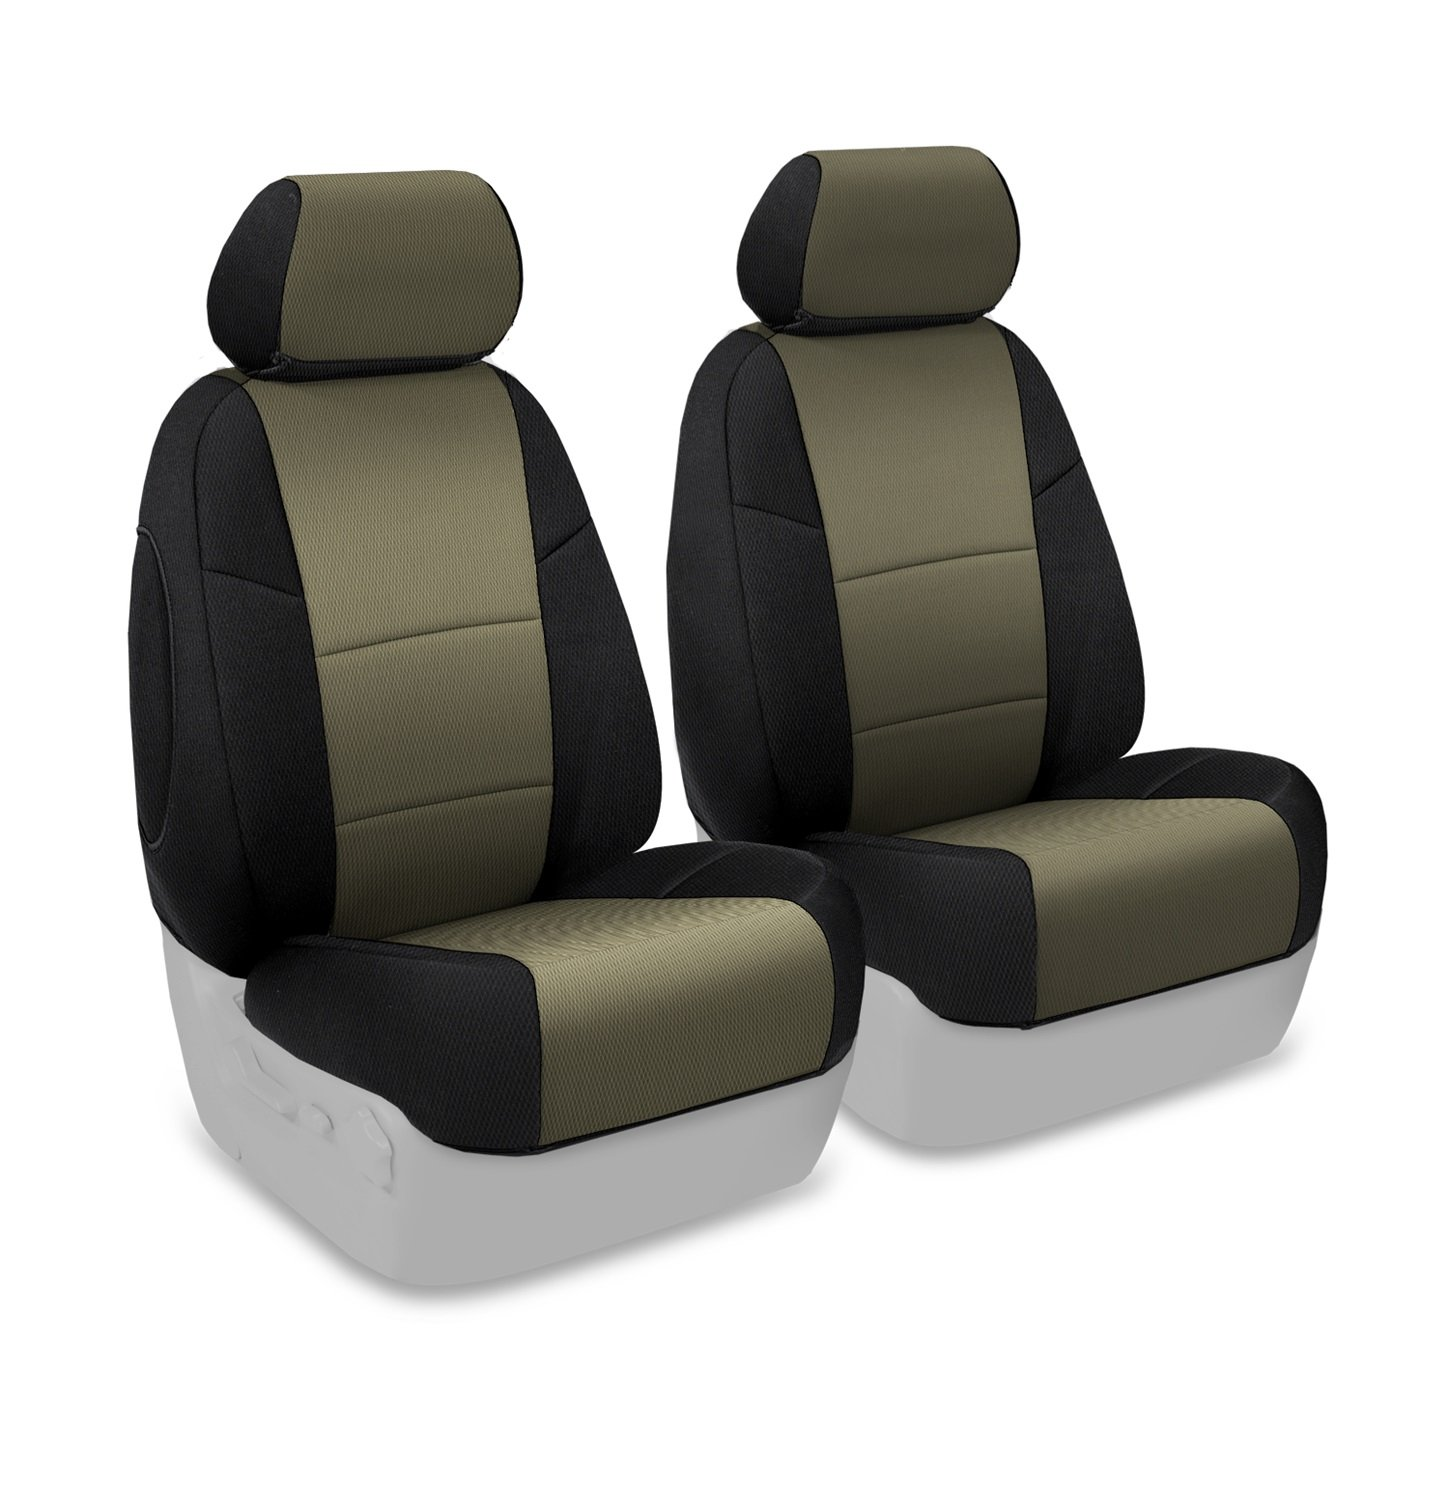 Coverking Custom Fit Rear 60//40 Bench Seat Cover for Select Jeep Grand Cherokee Models Black Neosupreme Solid